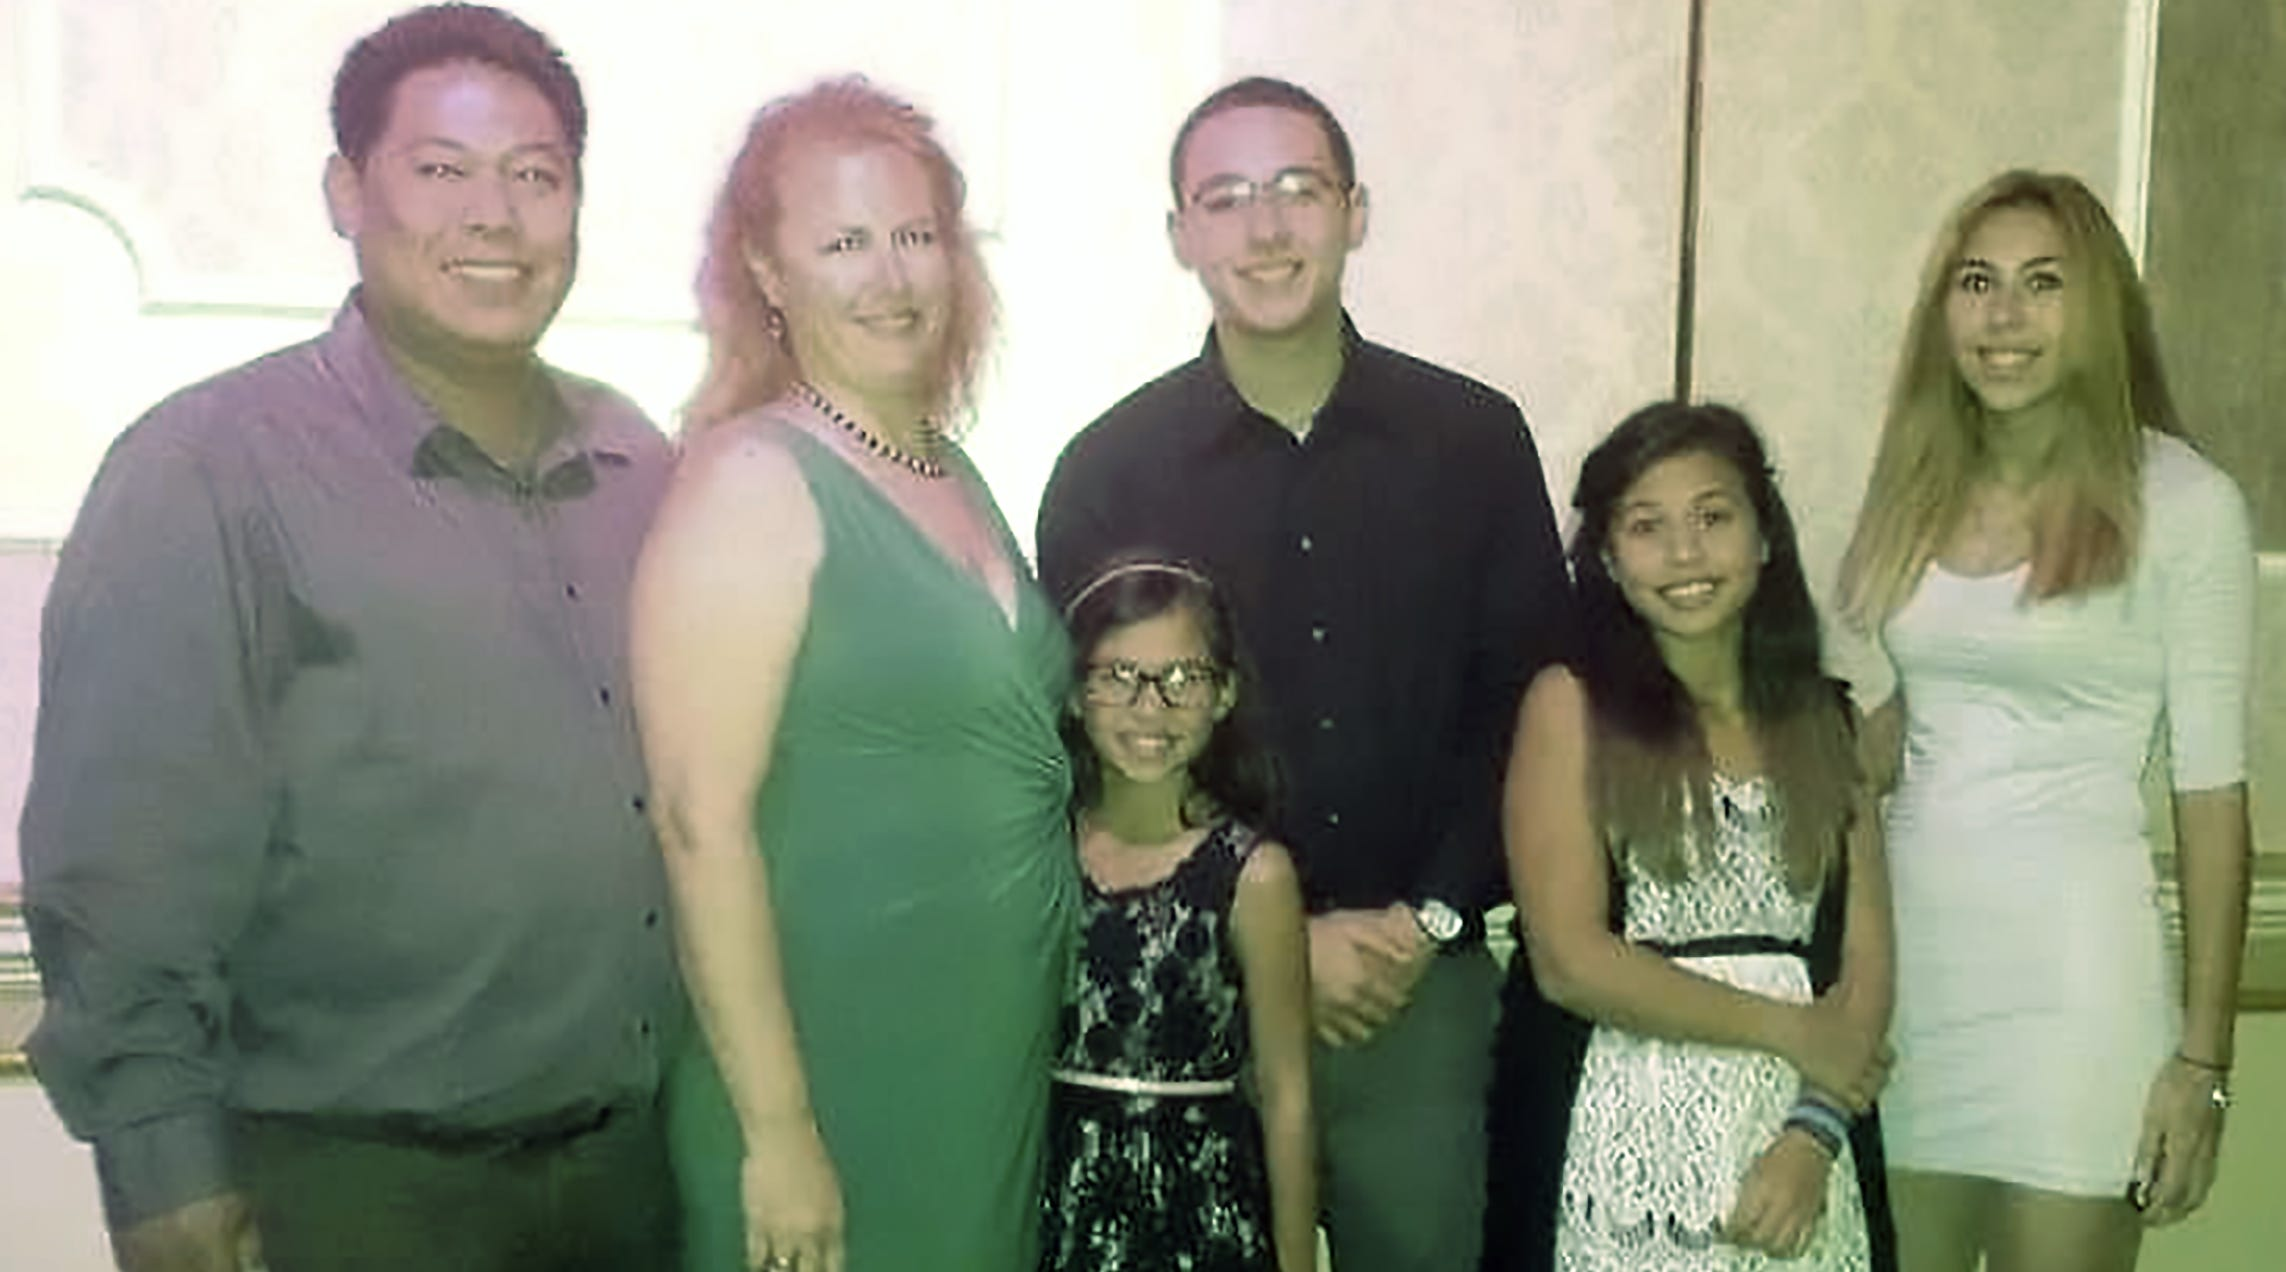 Cloyd Edralin, left, a green card holder who has lived in the U.S. for 30 years, is pictured next to his wife, Brandi Davison-Edralin, and their four children ages 11 to 22.